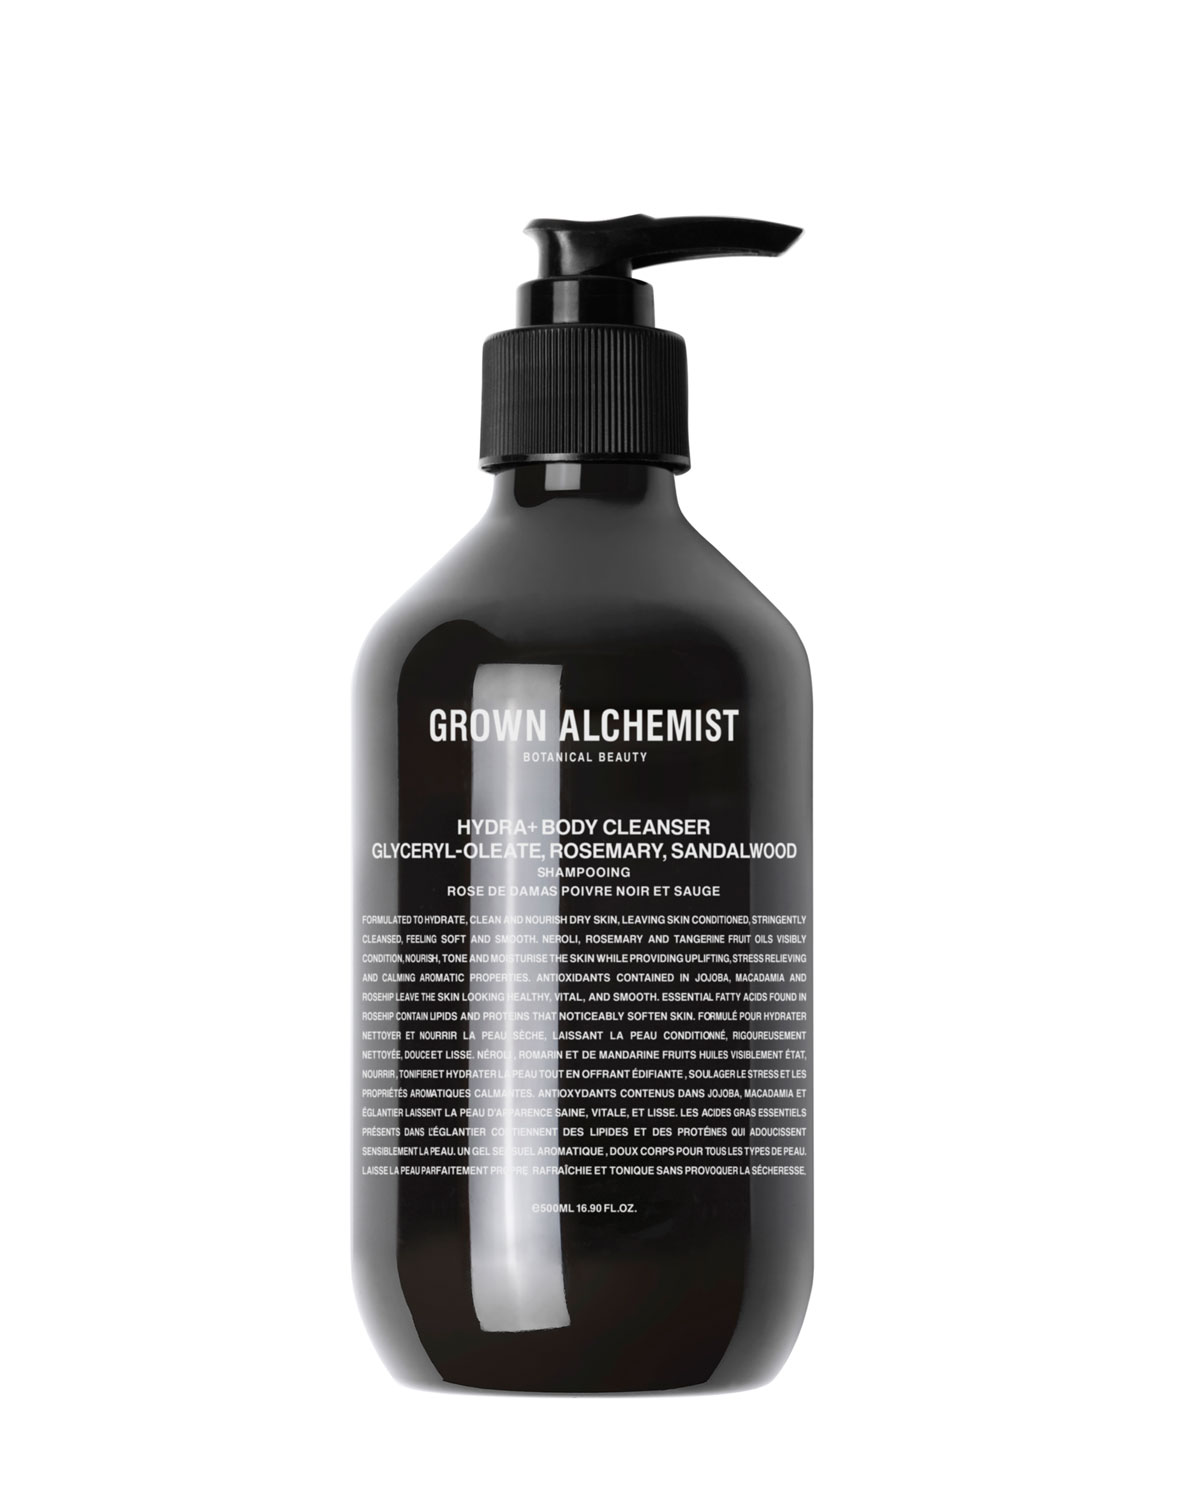 GROWN ALCHEMIST Hydra+ Body Cleanser: Glyceryl-Oleate, Rosemary, Sandalwood - 16.9 Oz./ 500 Ml